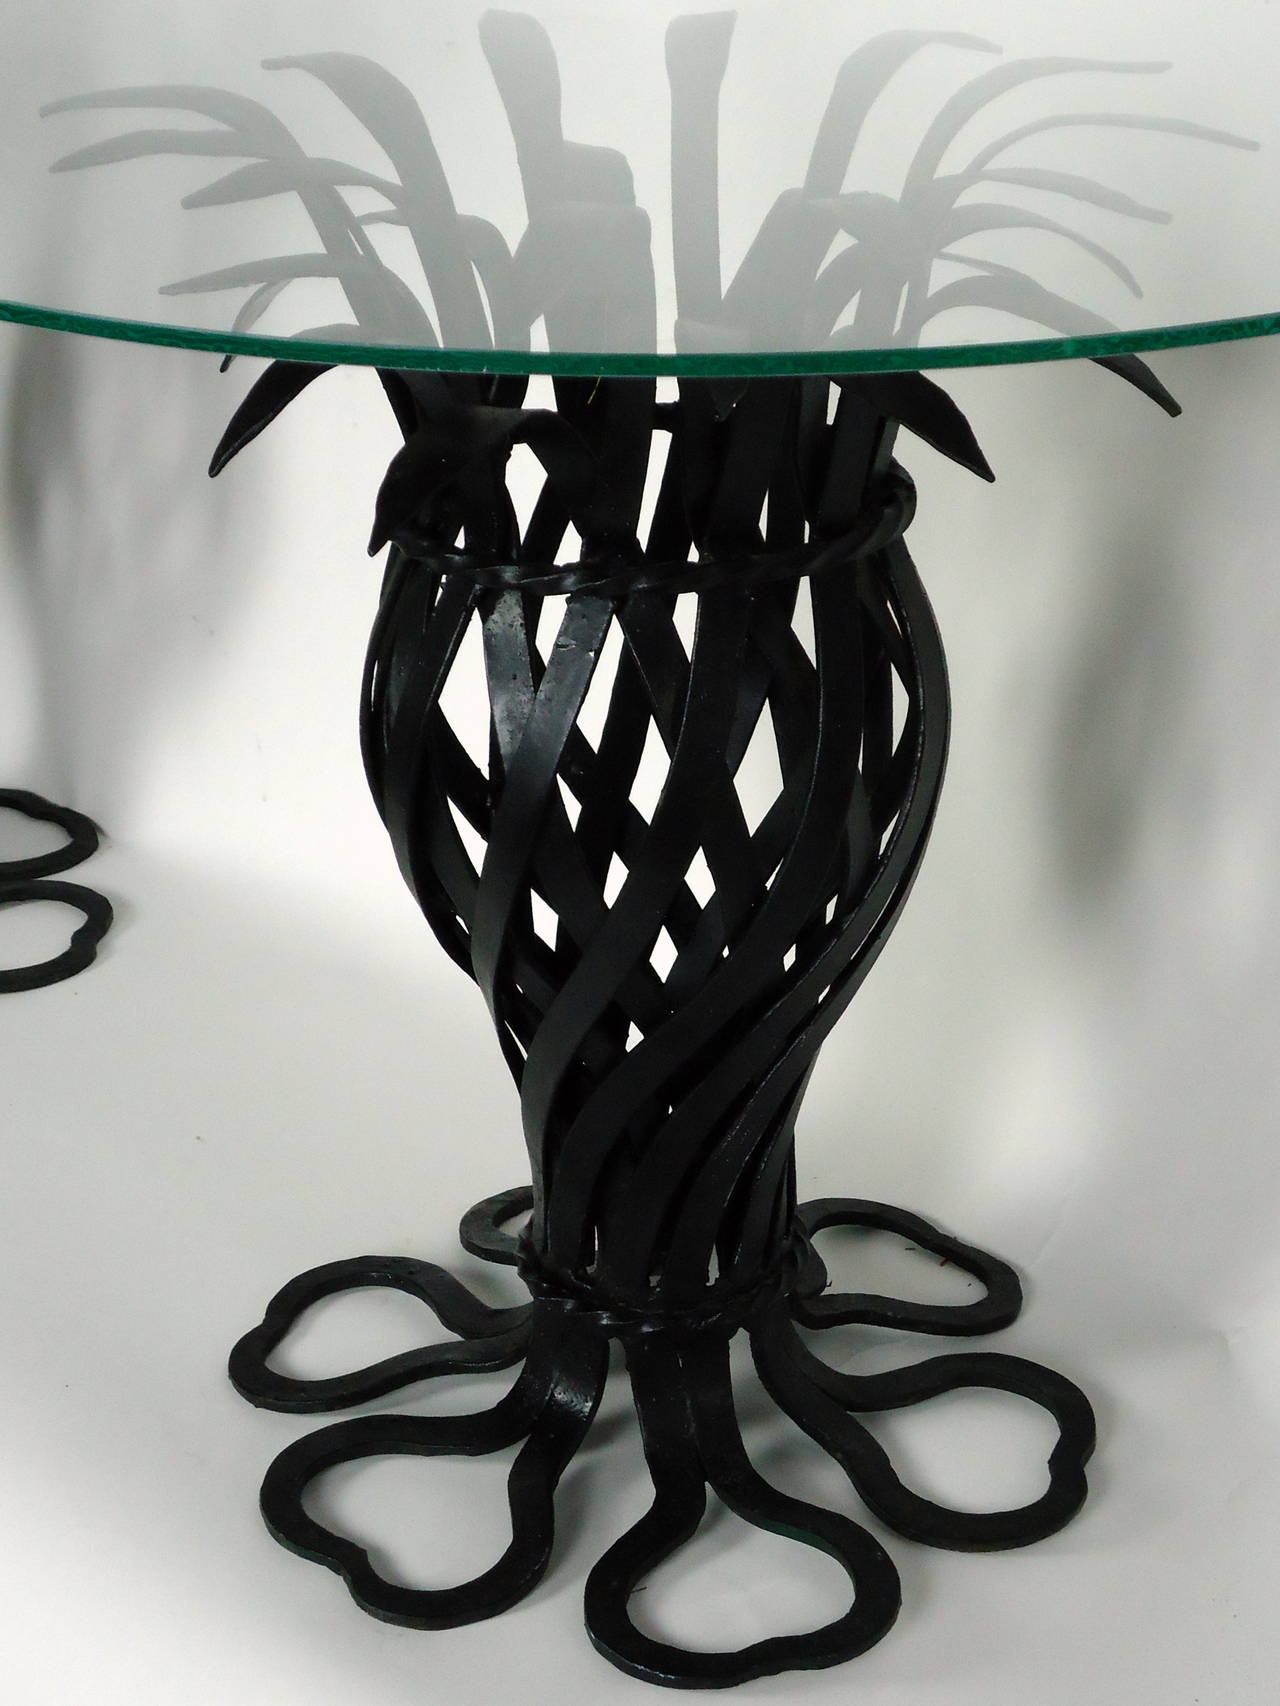 Salterini Style Pair of Woven Wrought Iron Pineapple End Tables, circa 1970 In Good Condition For Sale In Camden, ME